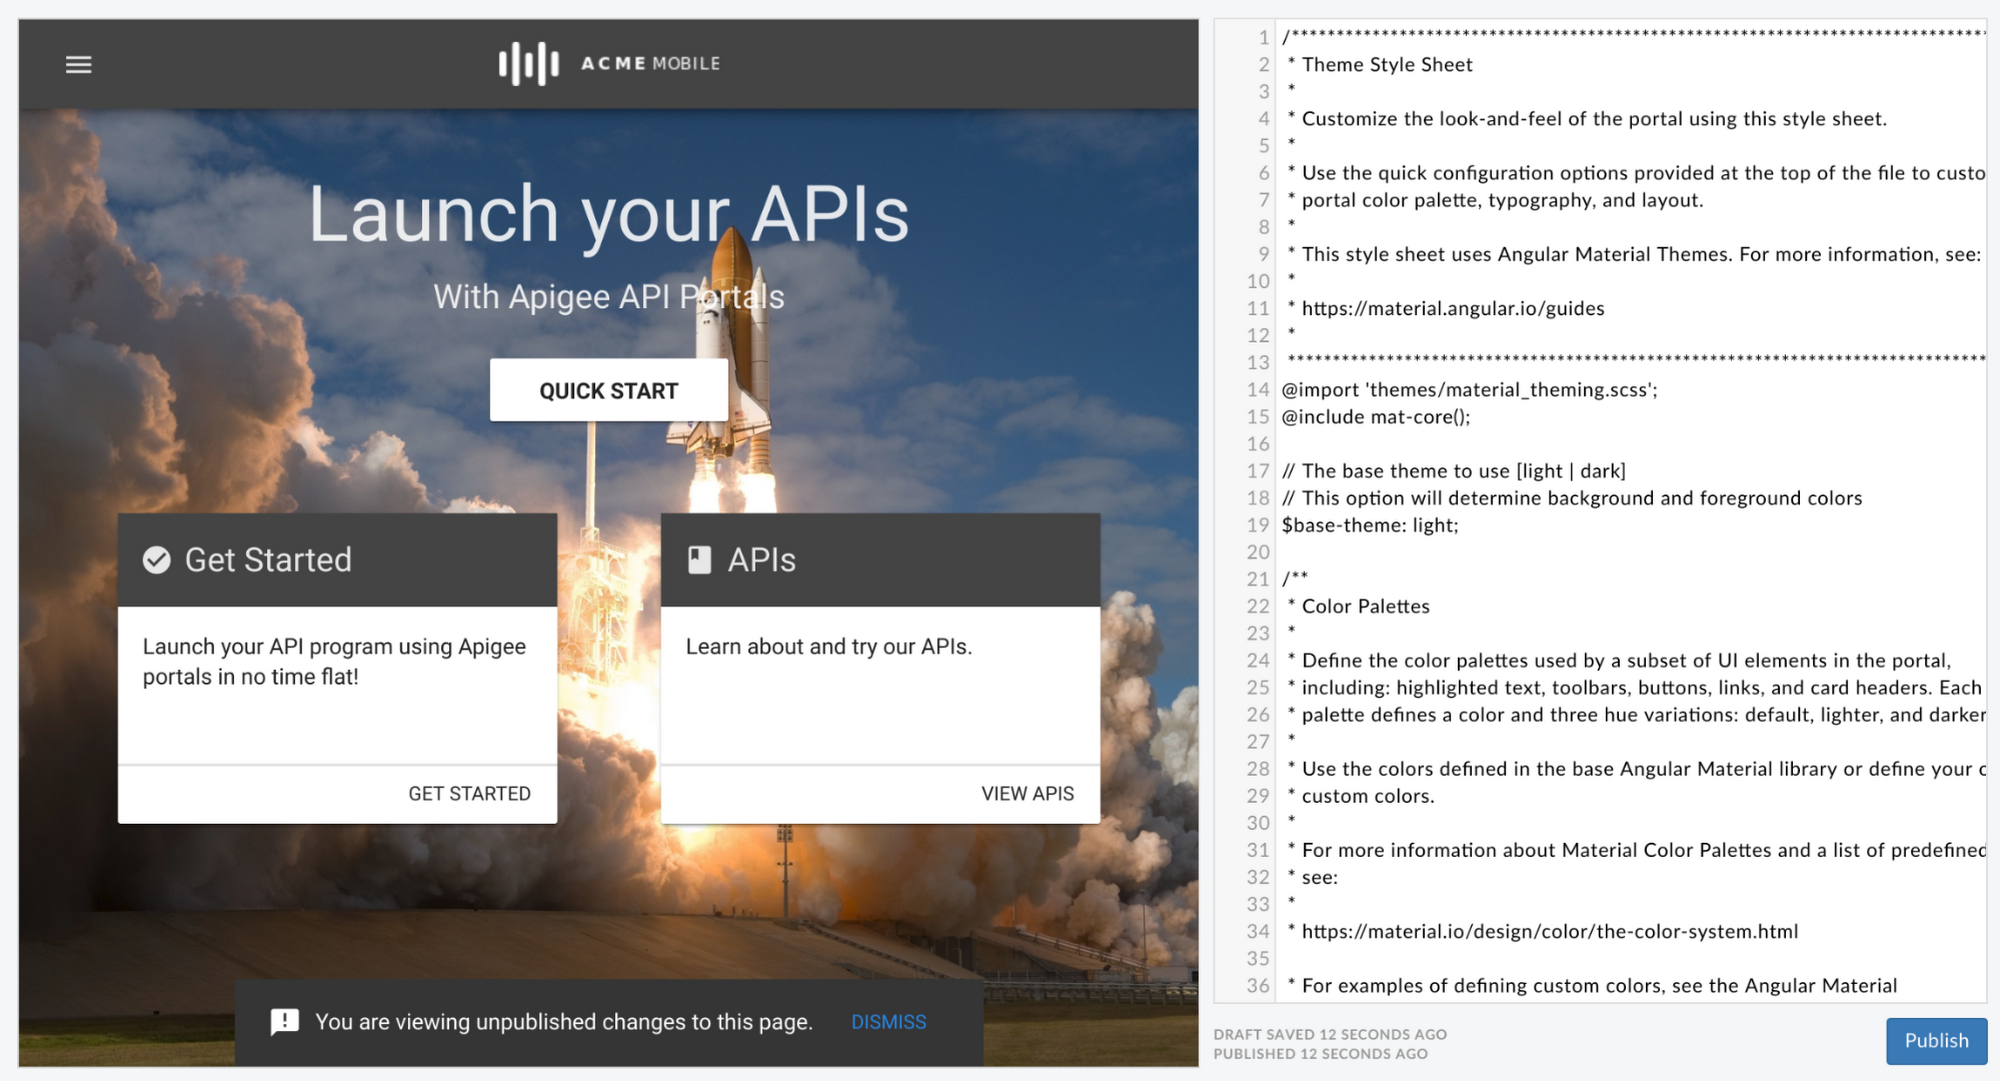 Improving the developer experience with the enhanced Apigee